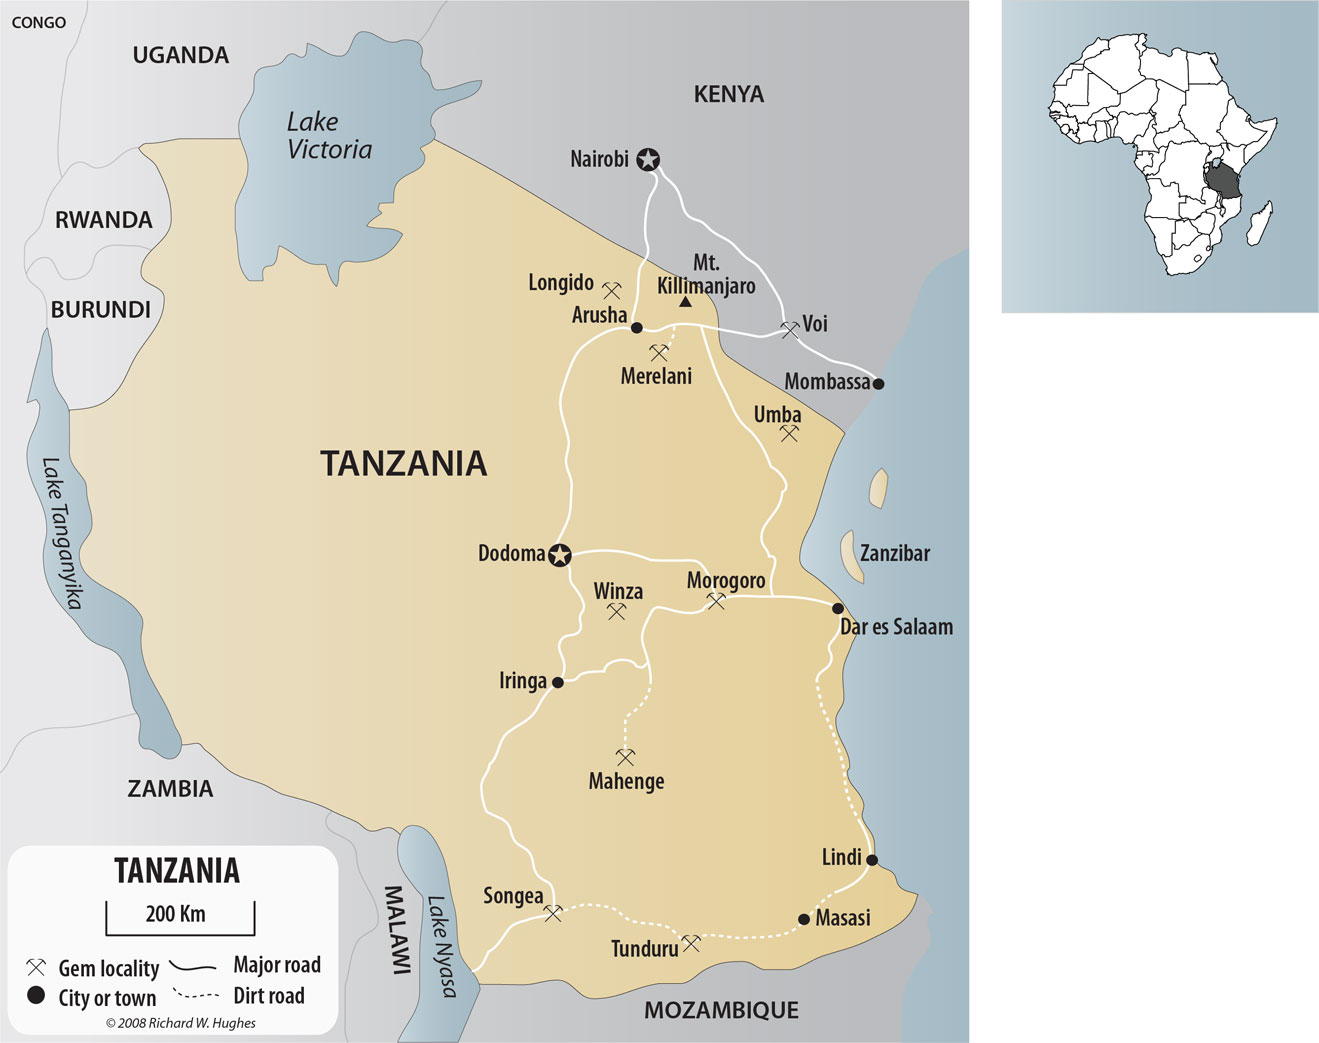 Downtown gem hunting in tanzania lotus gemology map of tanzania and southern kenya show the major gem localities click on the gumiabroncs Gallery